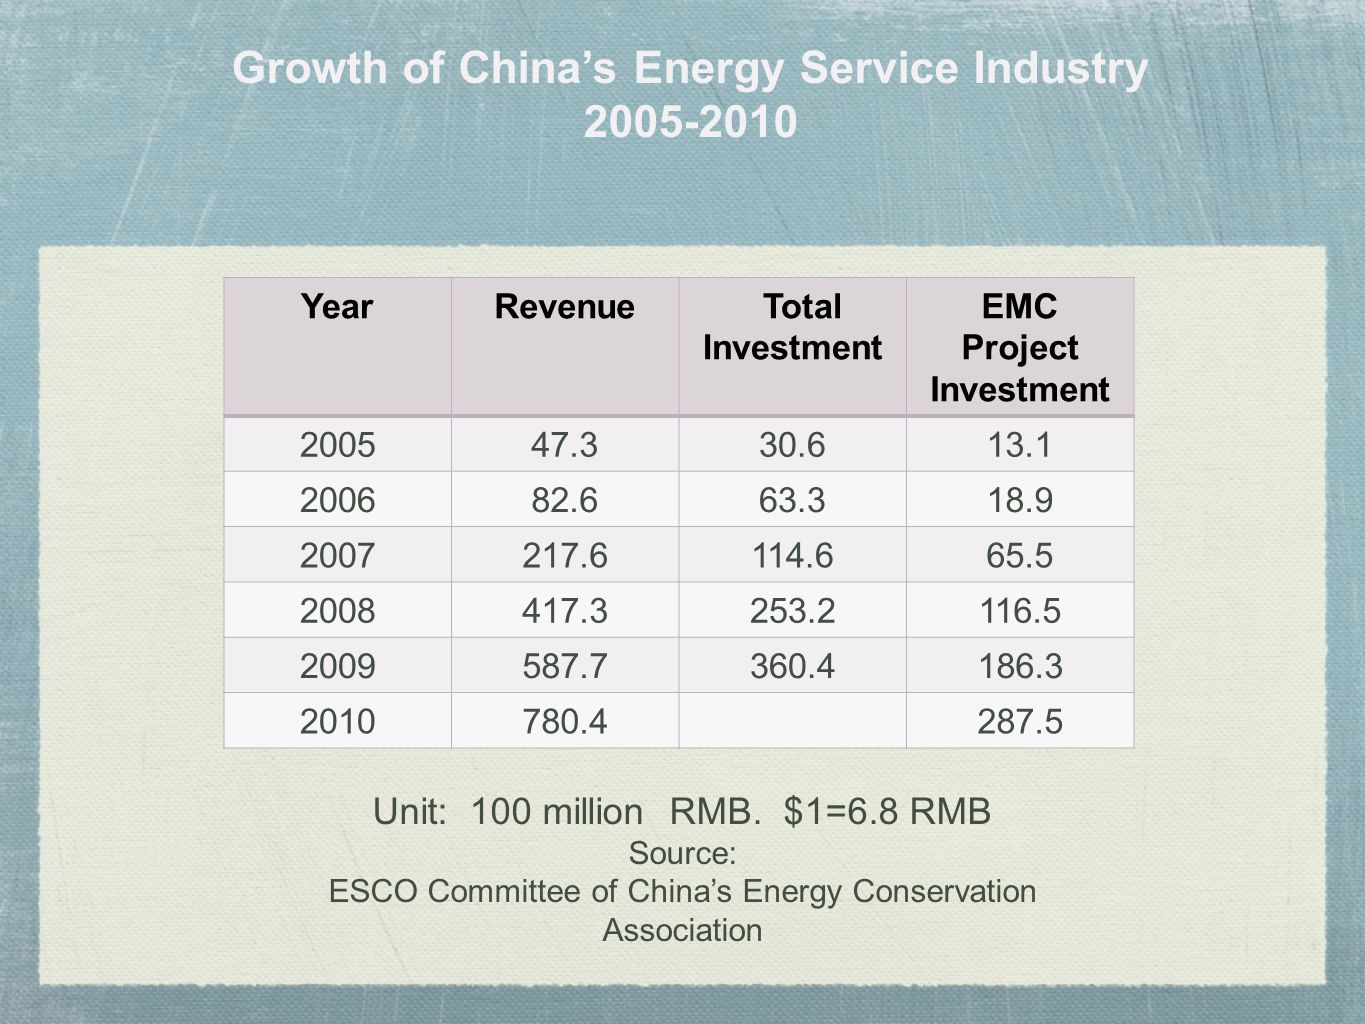 Growth of China's Energy Service Industry